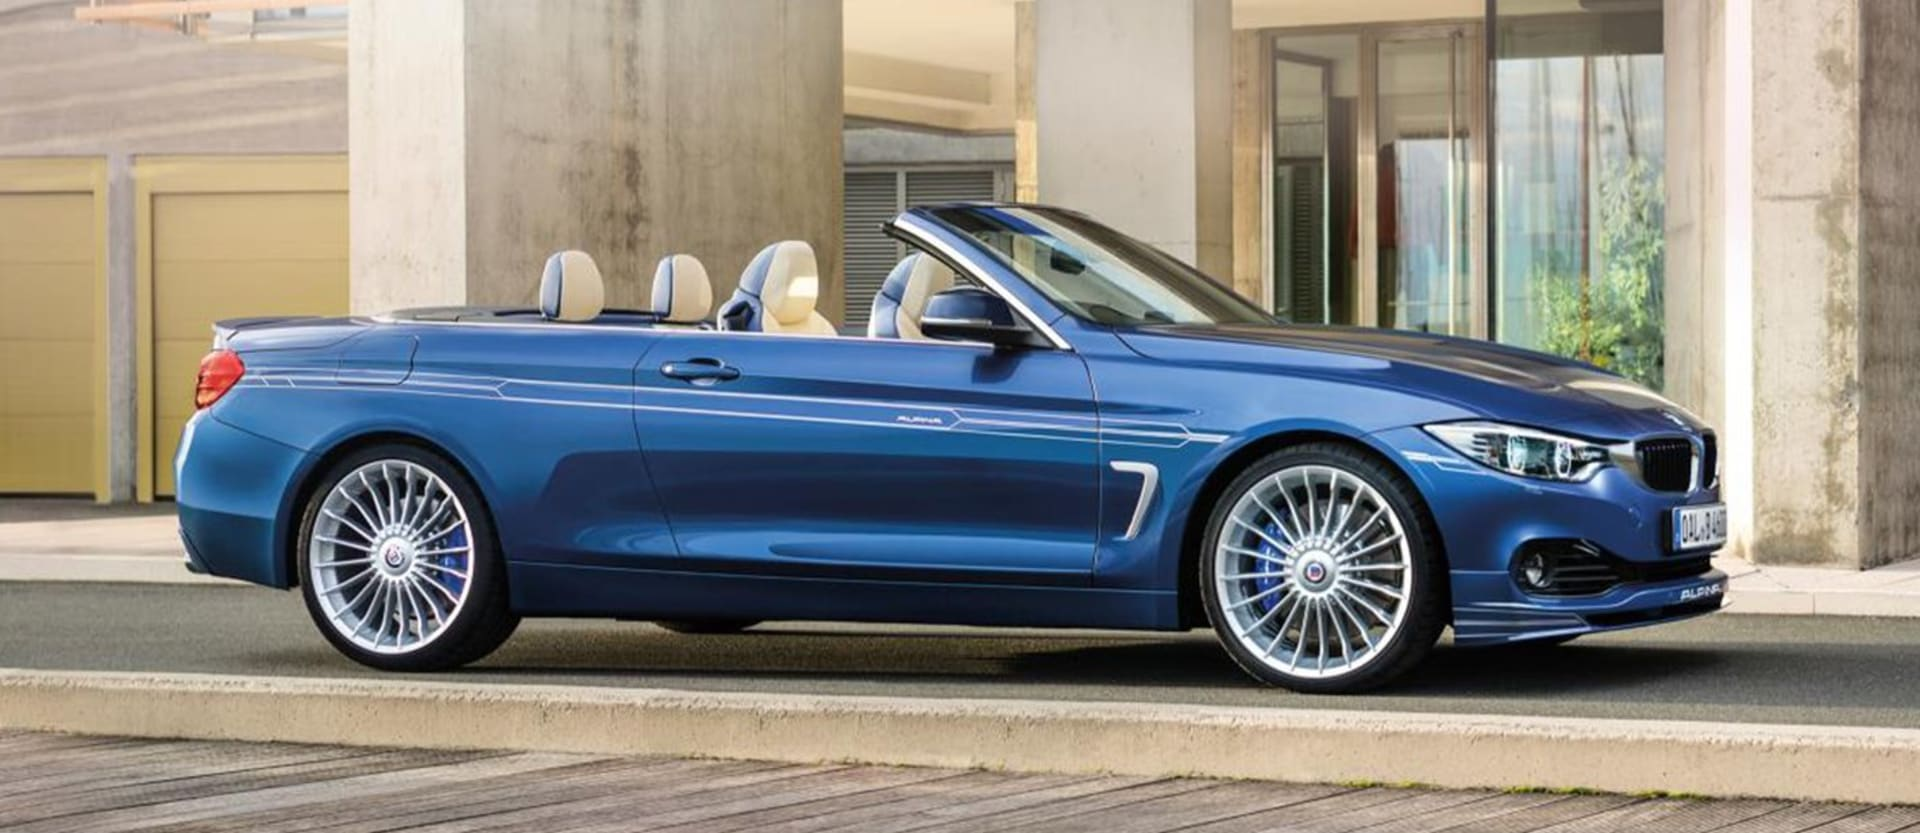 Alpina BMW BiTurbo